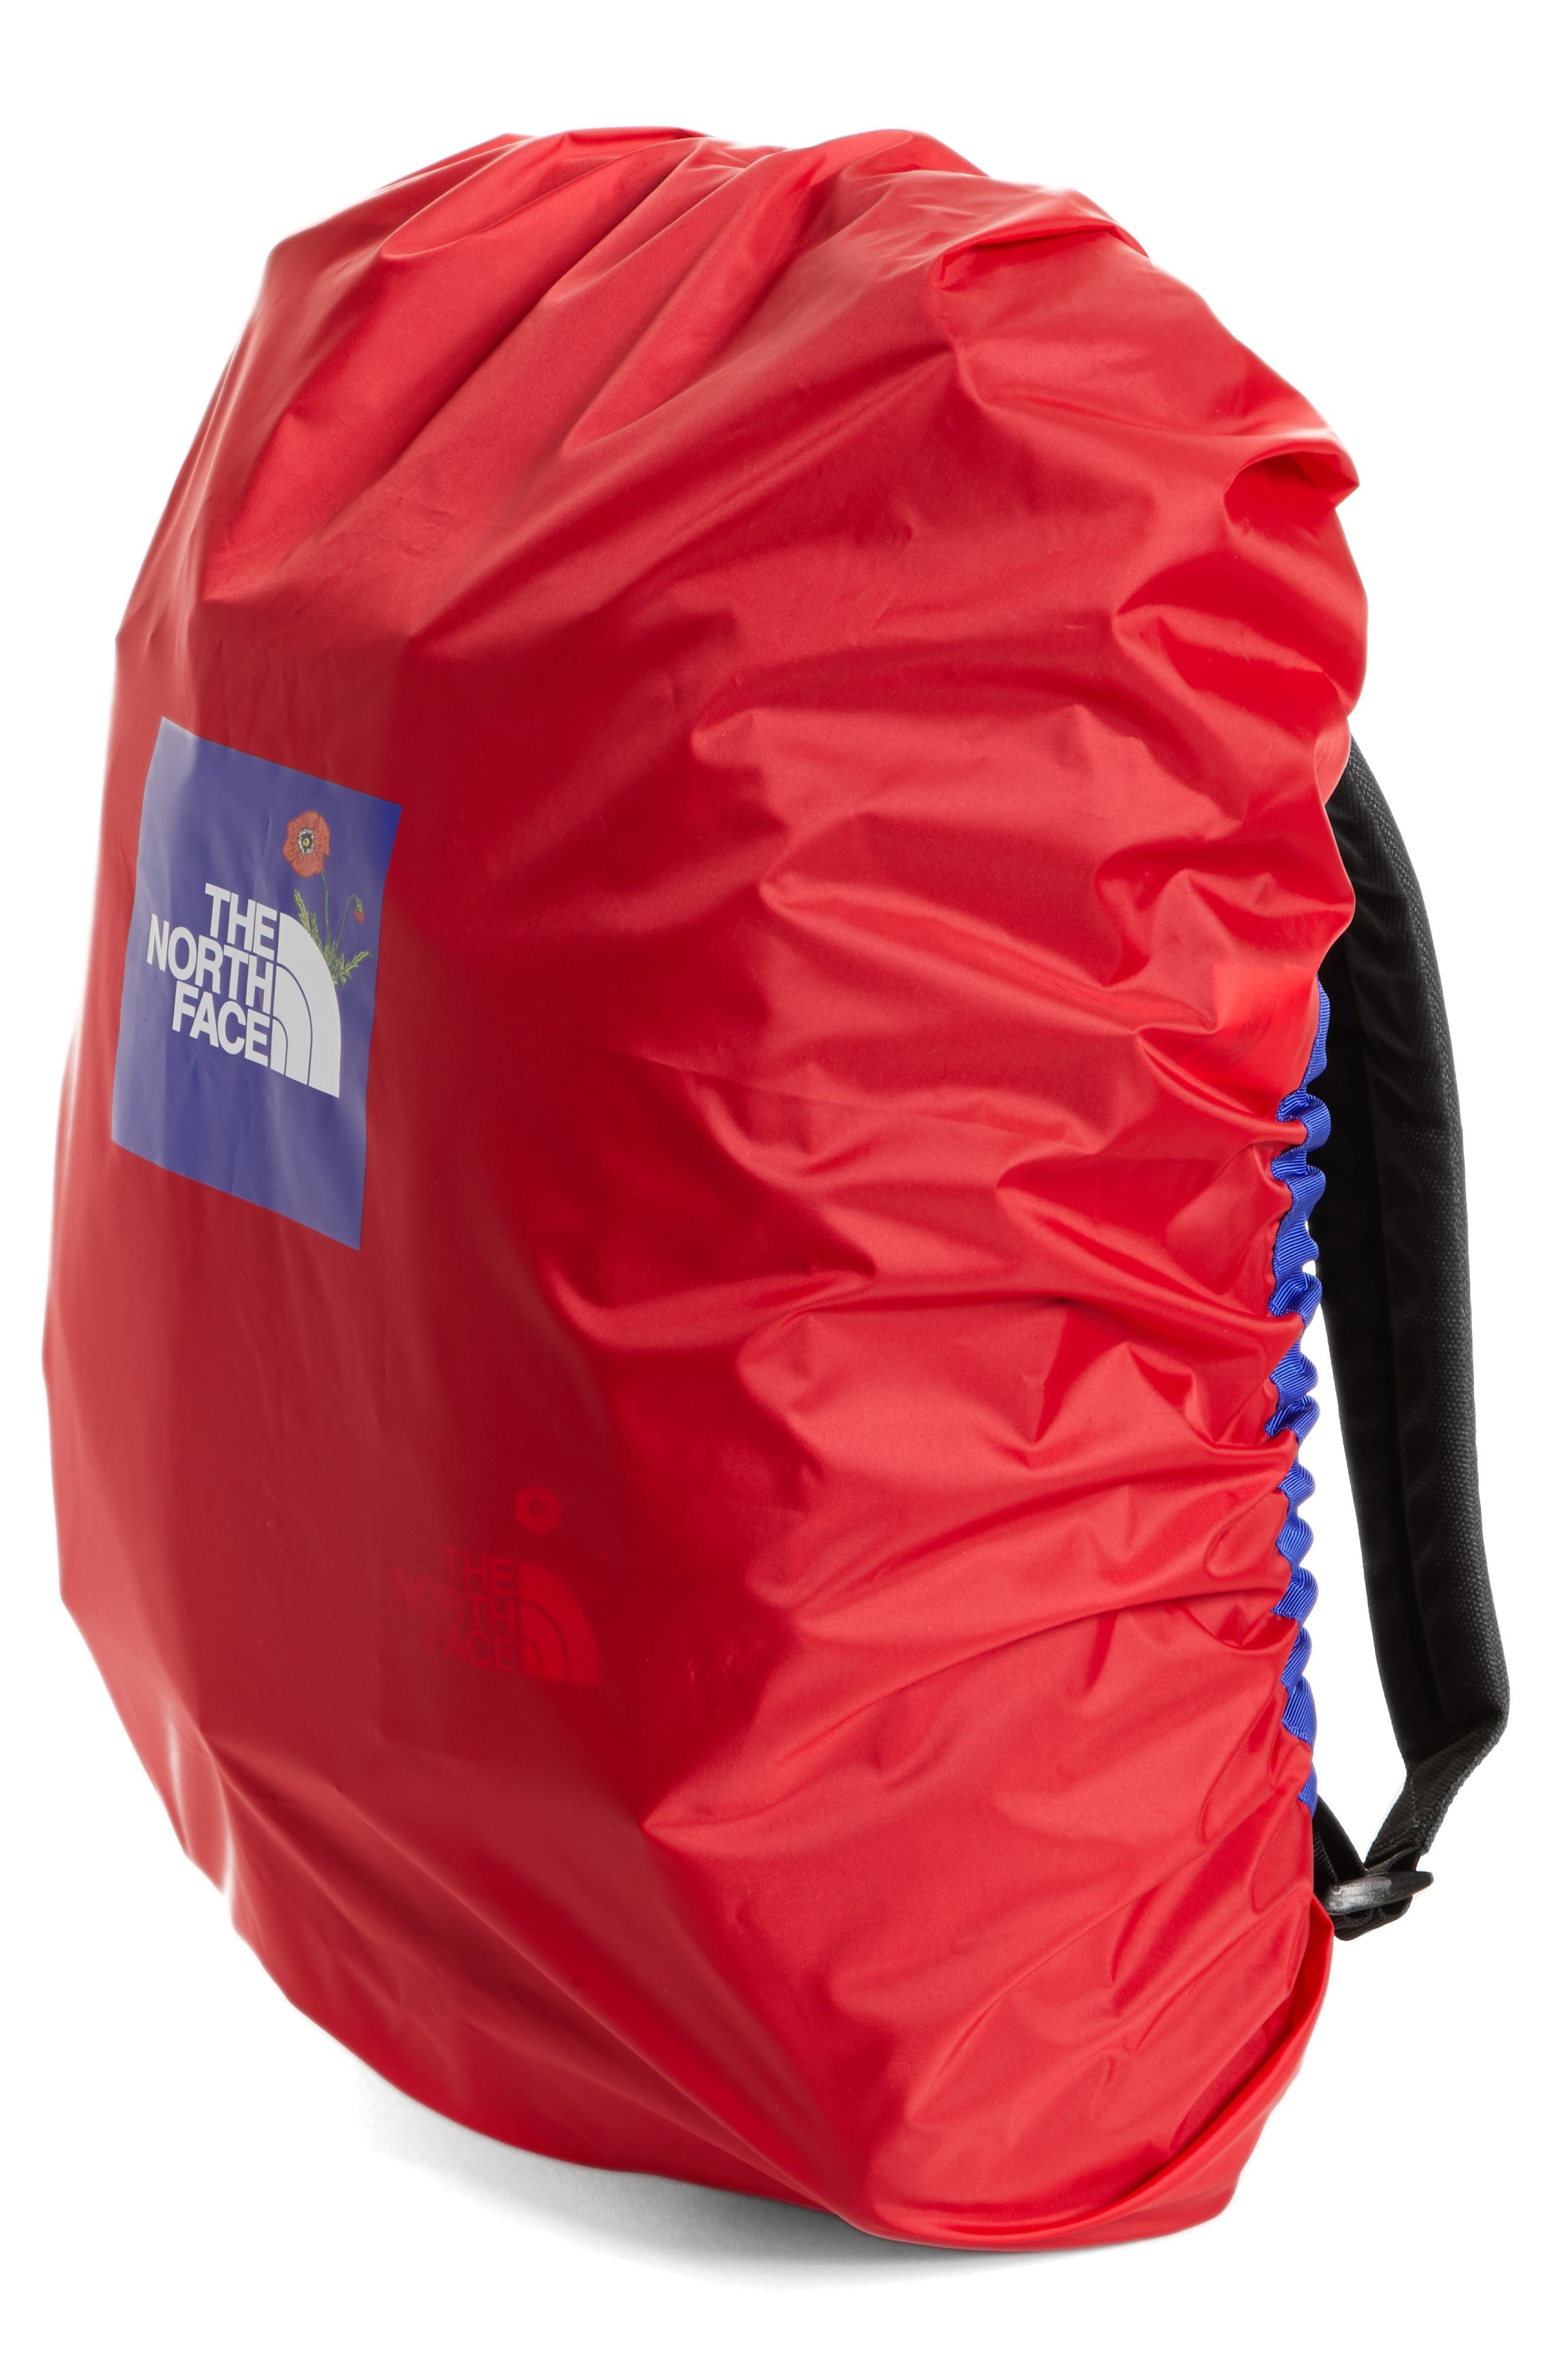 The North Face Pack Waterproof Rain Cover